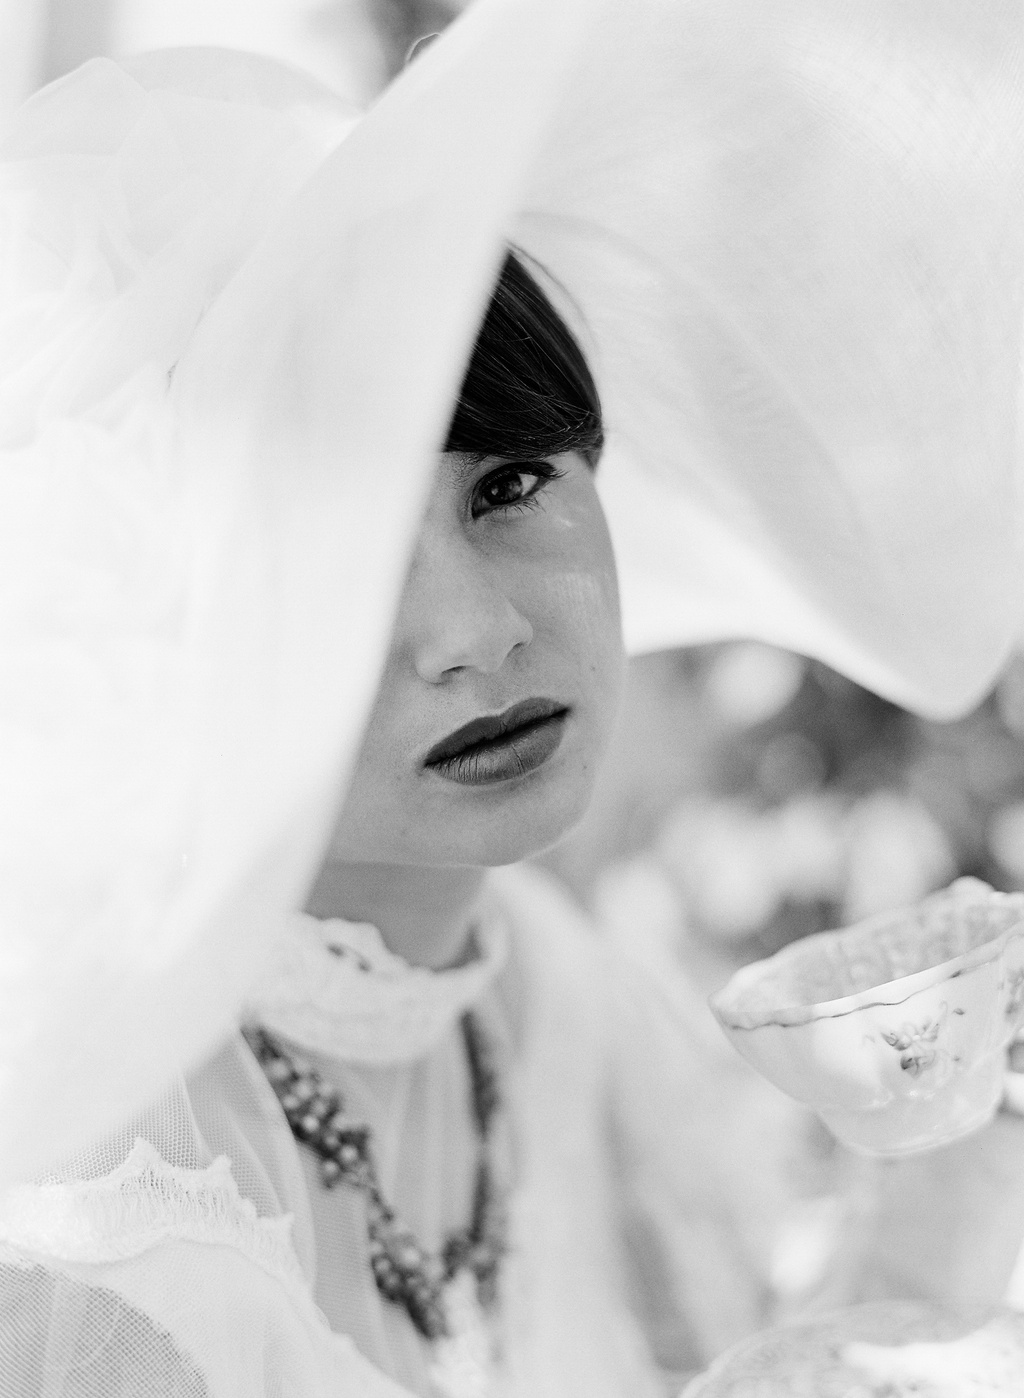 Styled-wedding-beaux-arts-tea-time-monique-lhuillier-santa-barbara-chic-bride-hat-black-and-white-95.full